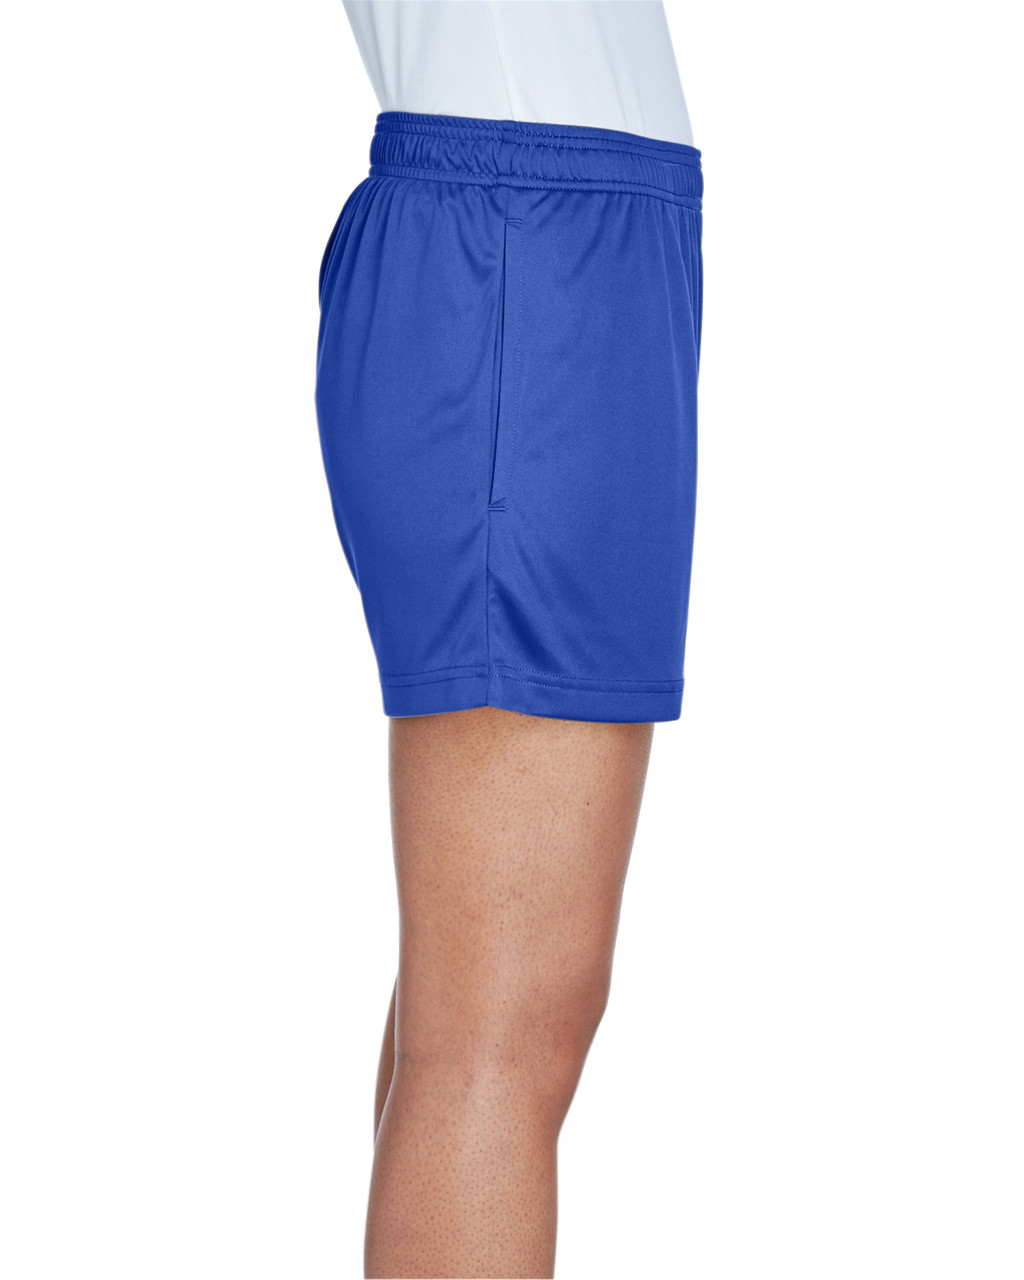 Sport Royal - Side, TT11SHW Team 365 Ladies' Zone Performance Short | T-shirt.ca